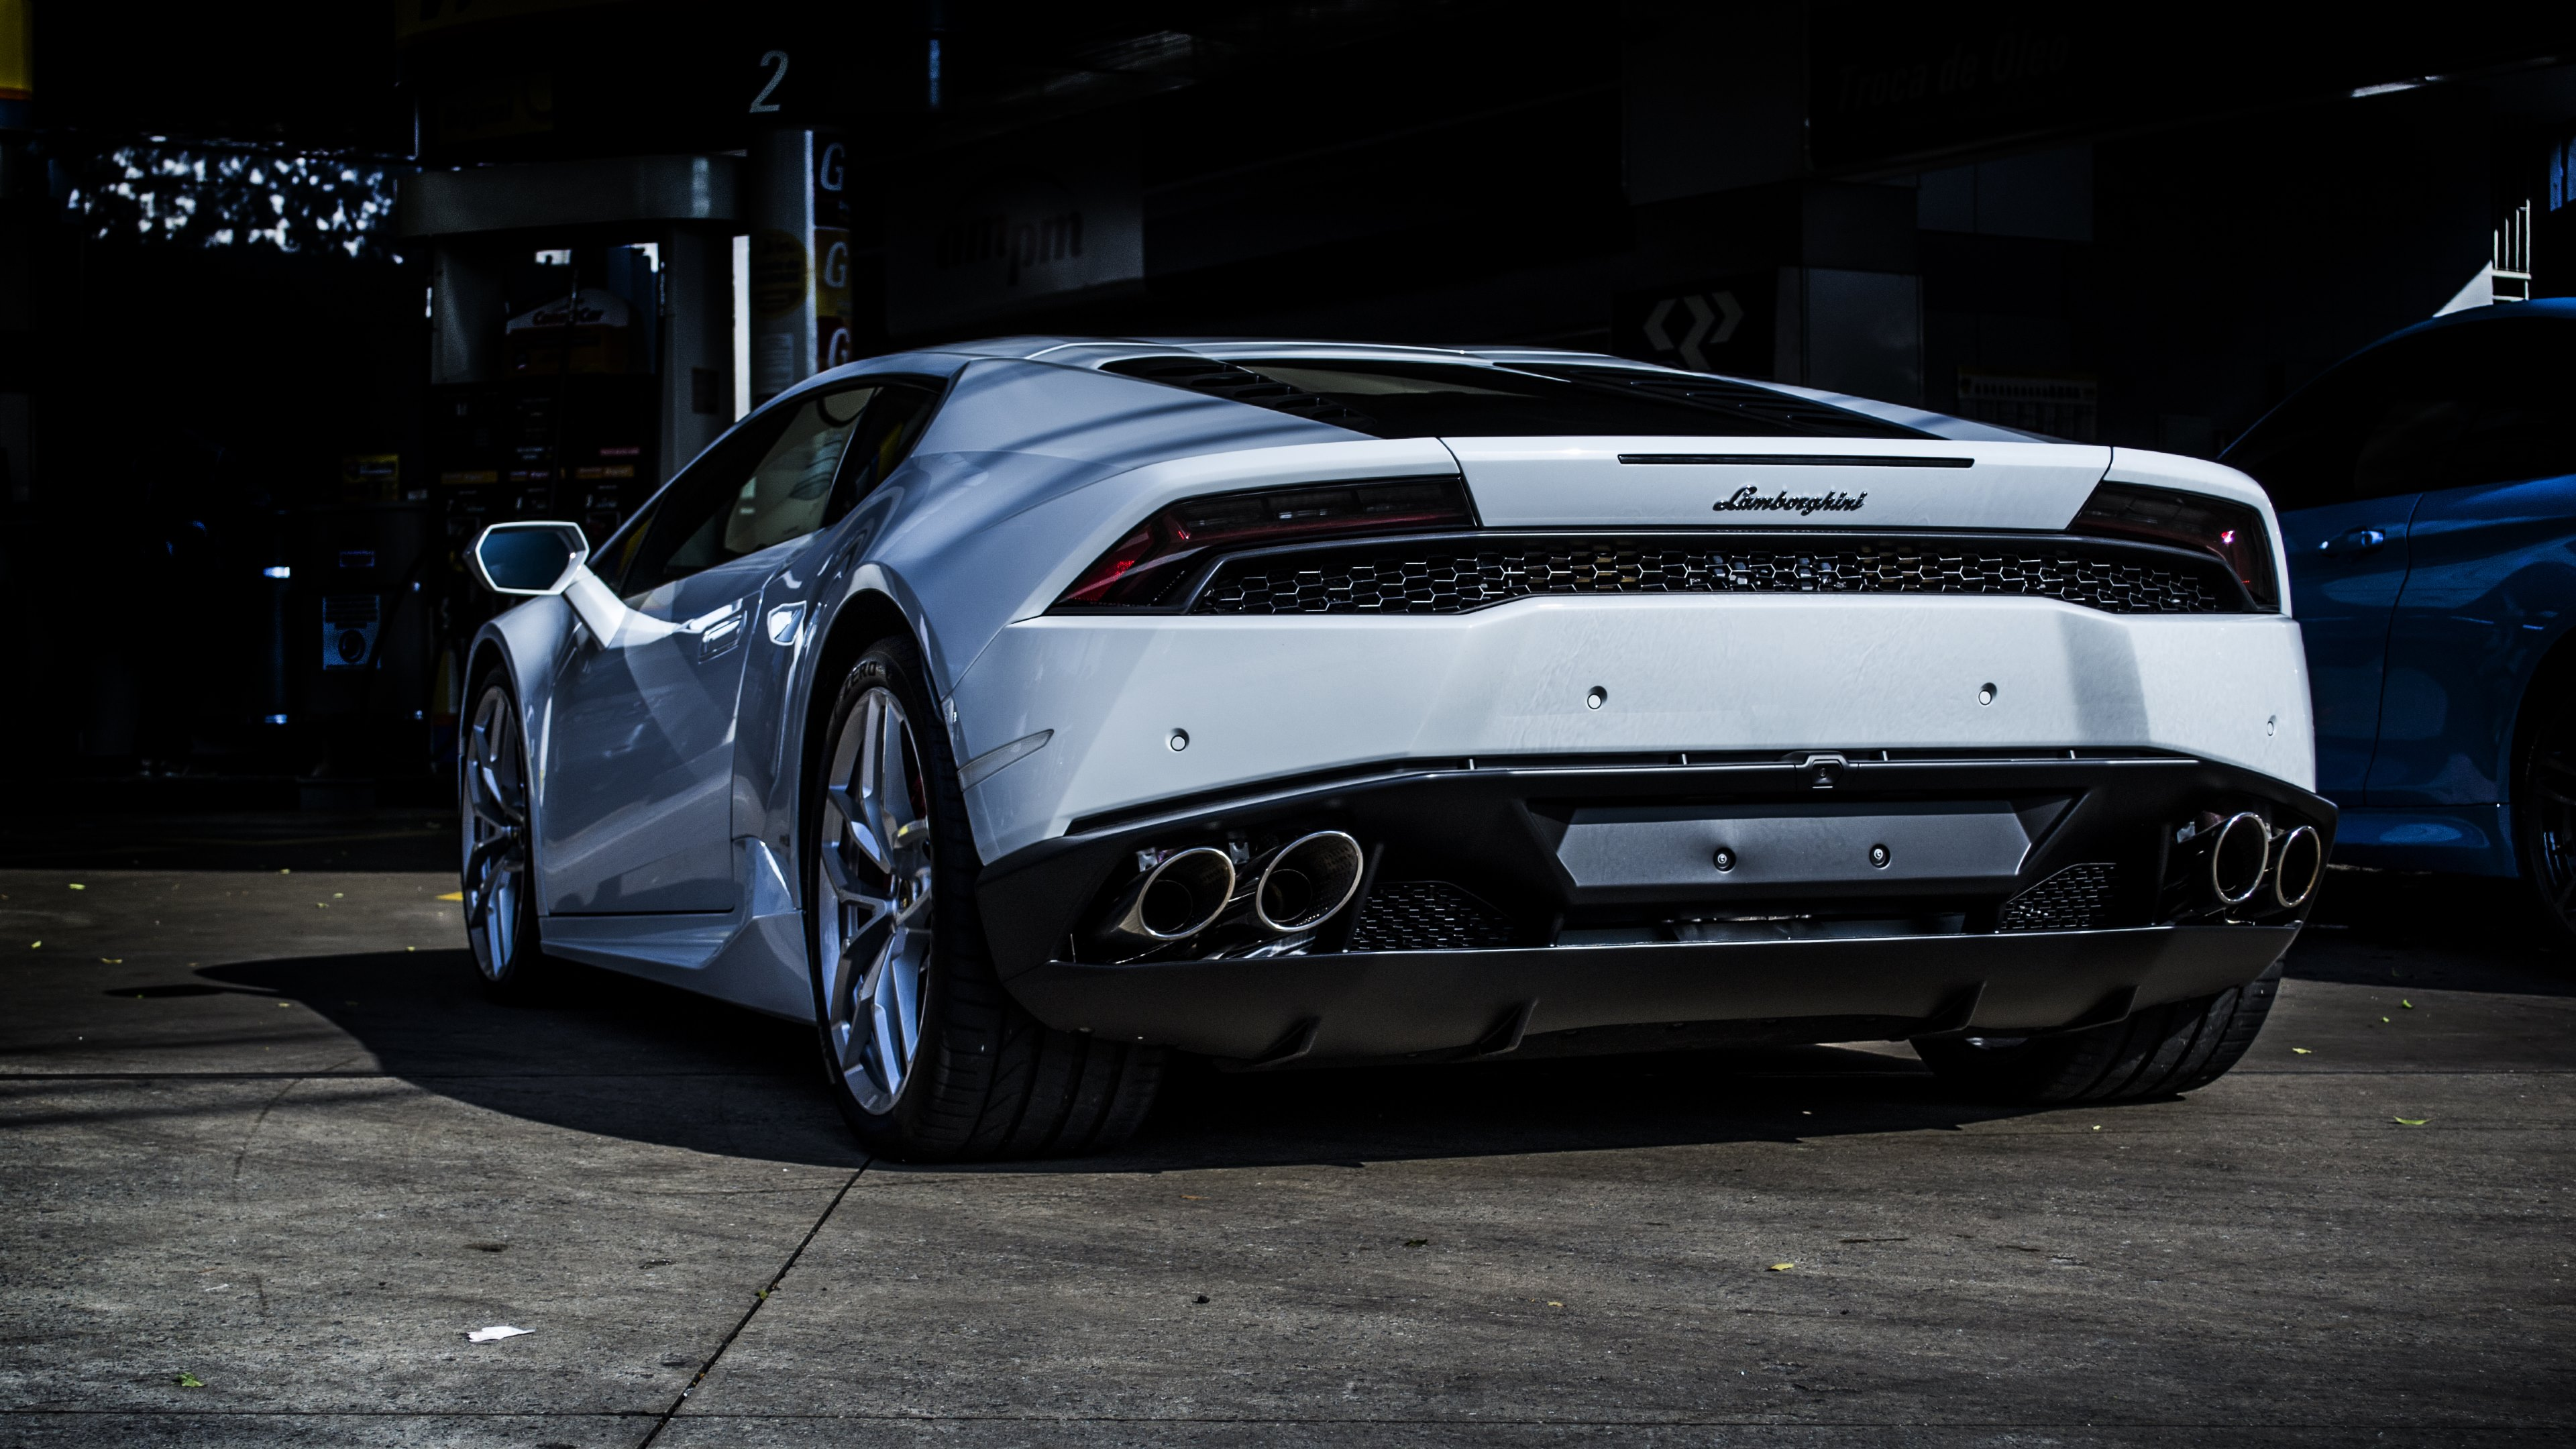 wallpaper lamborghini huracan rear view - Lamborghini Huracan Wallpaper